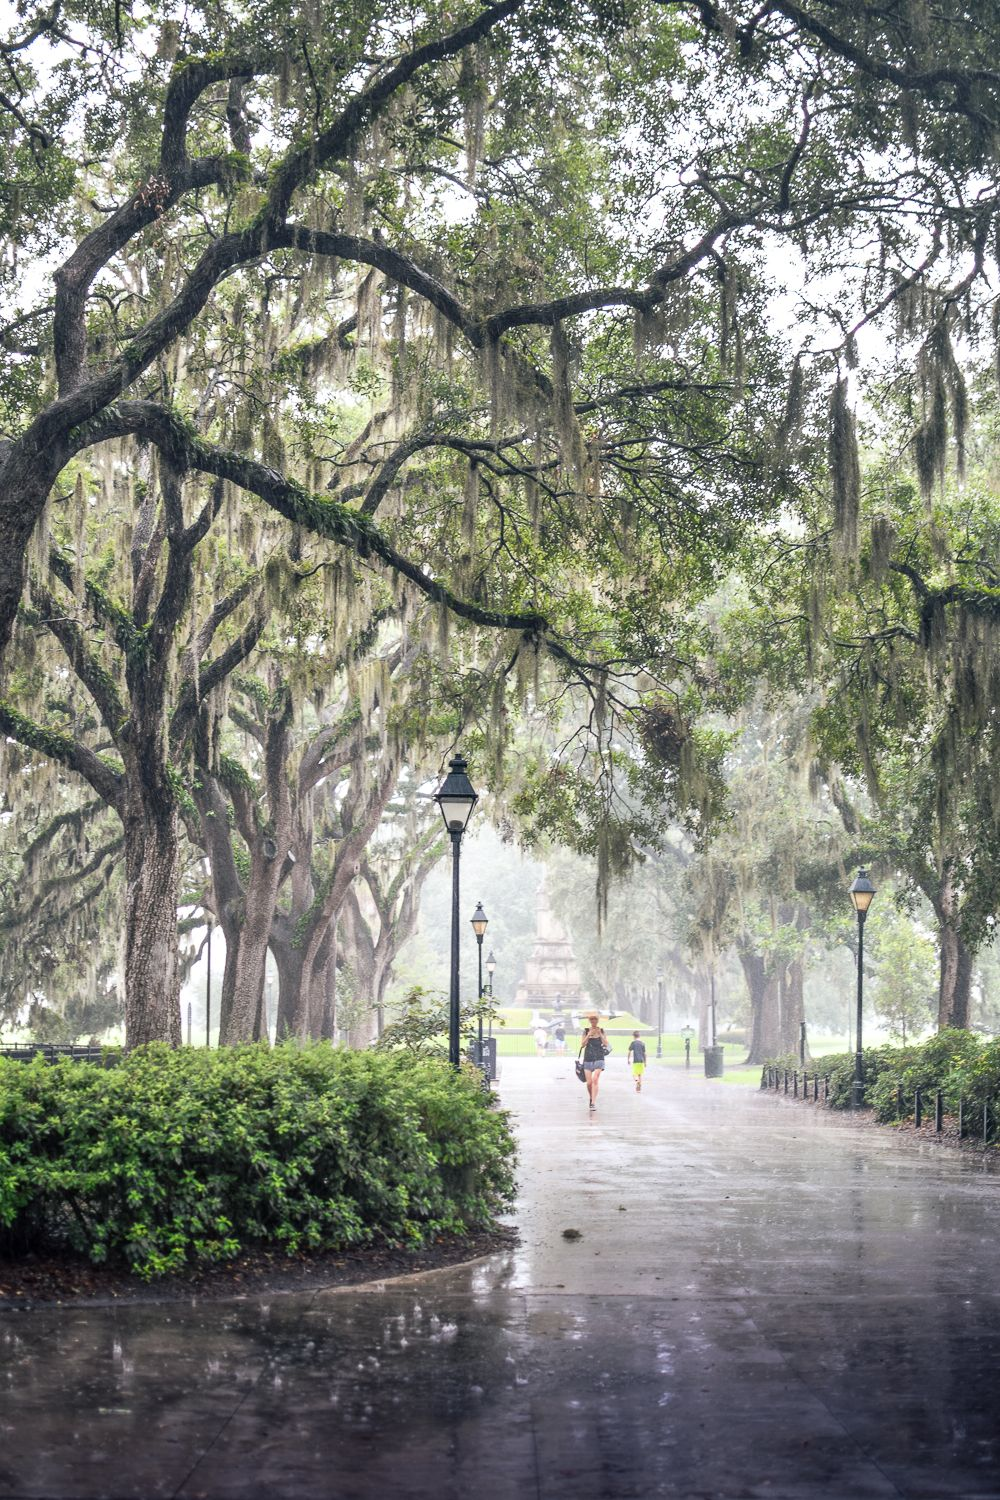 A Rainy Day In New York Bern Smitten With Savannah Where To Stay What To Do What To Eat Forsythpark Savannahgeorgia Savannah Chat Forsyth Park Sleeping Beauty Movie